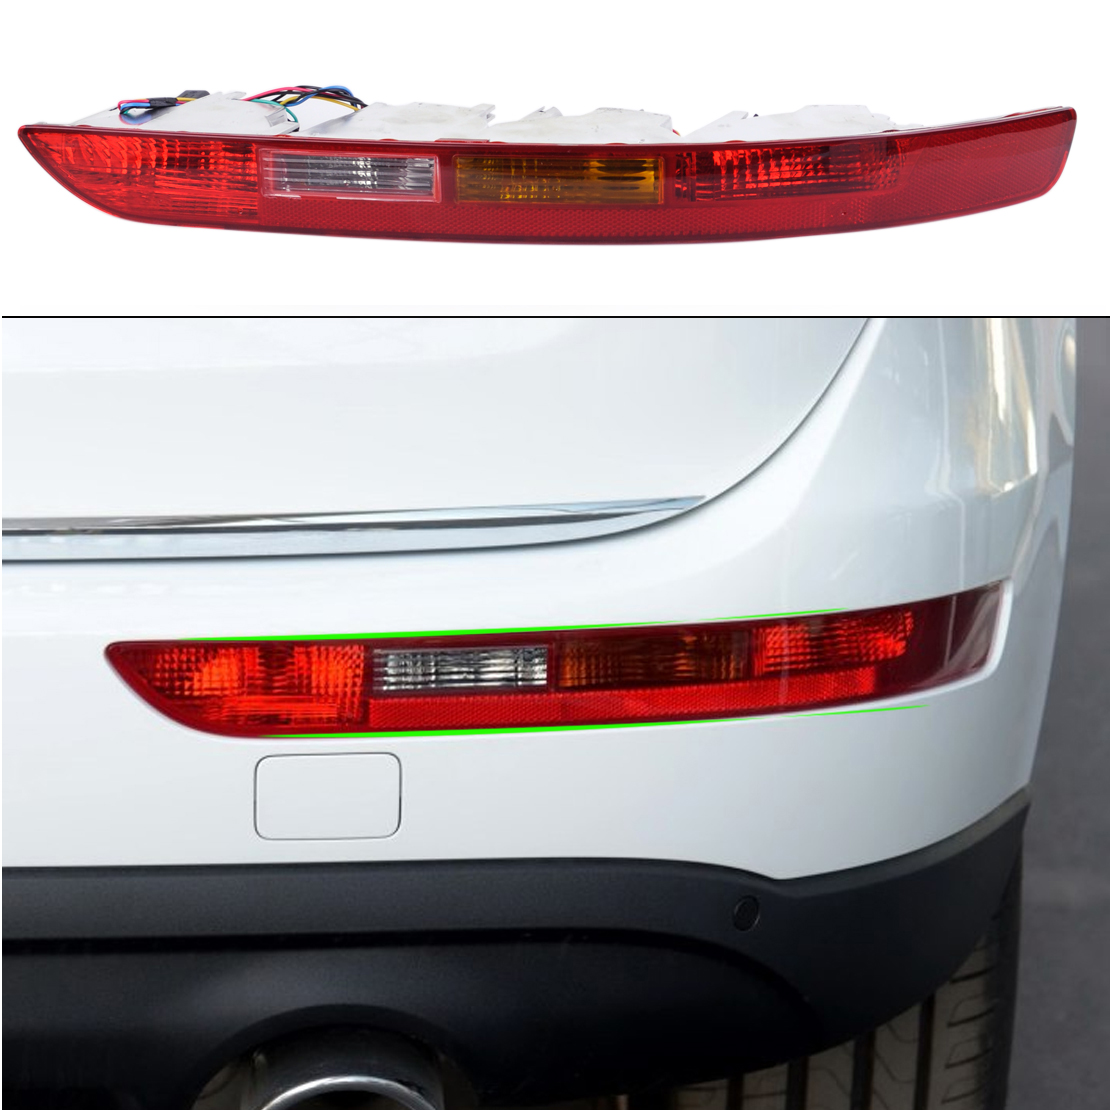 beler Car Rear Right Side Lower Bumper Taillight Lamp Reverse Fog Lamp Assembly 8R0945096 for Audi Q5 2009 - 2013 2014 2015 2016 new car styling left right rear light tail lamp taillight for 2006 2008 volkswagen passat rear taillight assembly auto parts